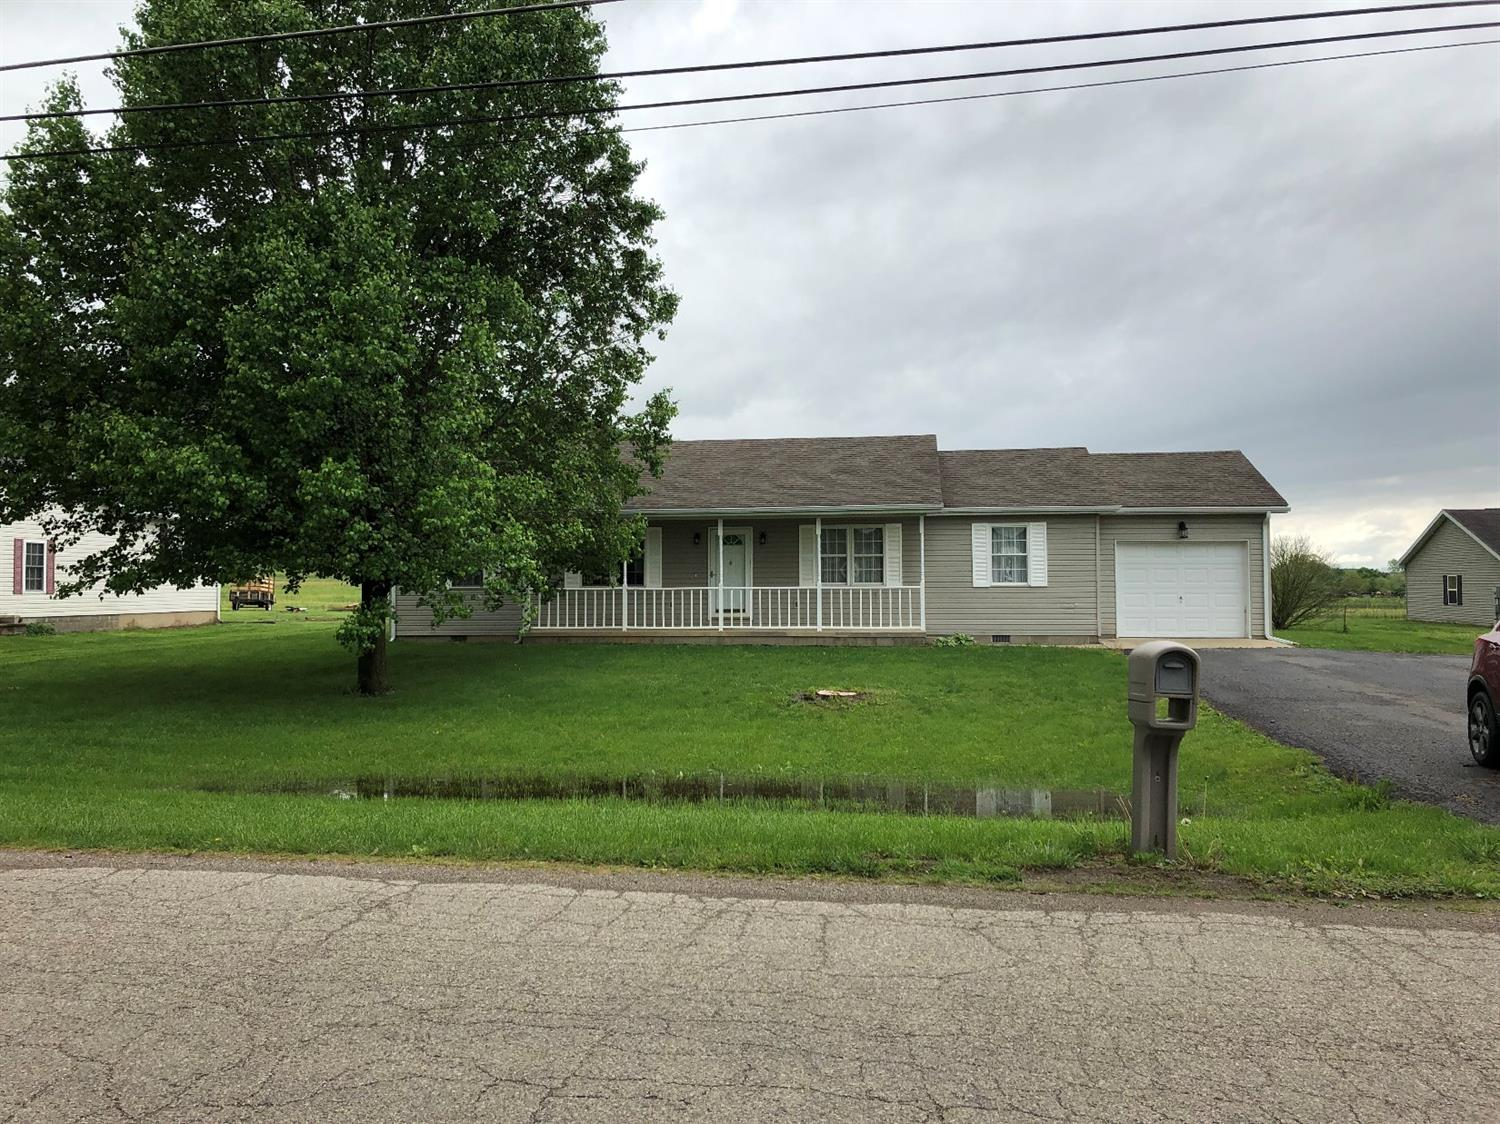 Photo 1 for 233 S Quarry St Ross County, OH 45612